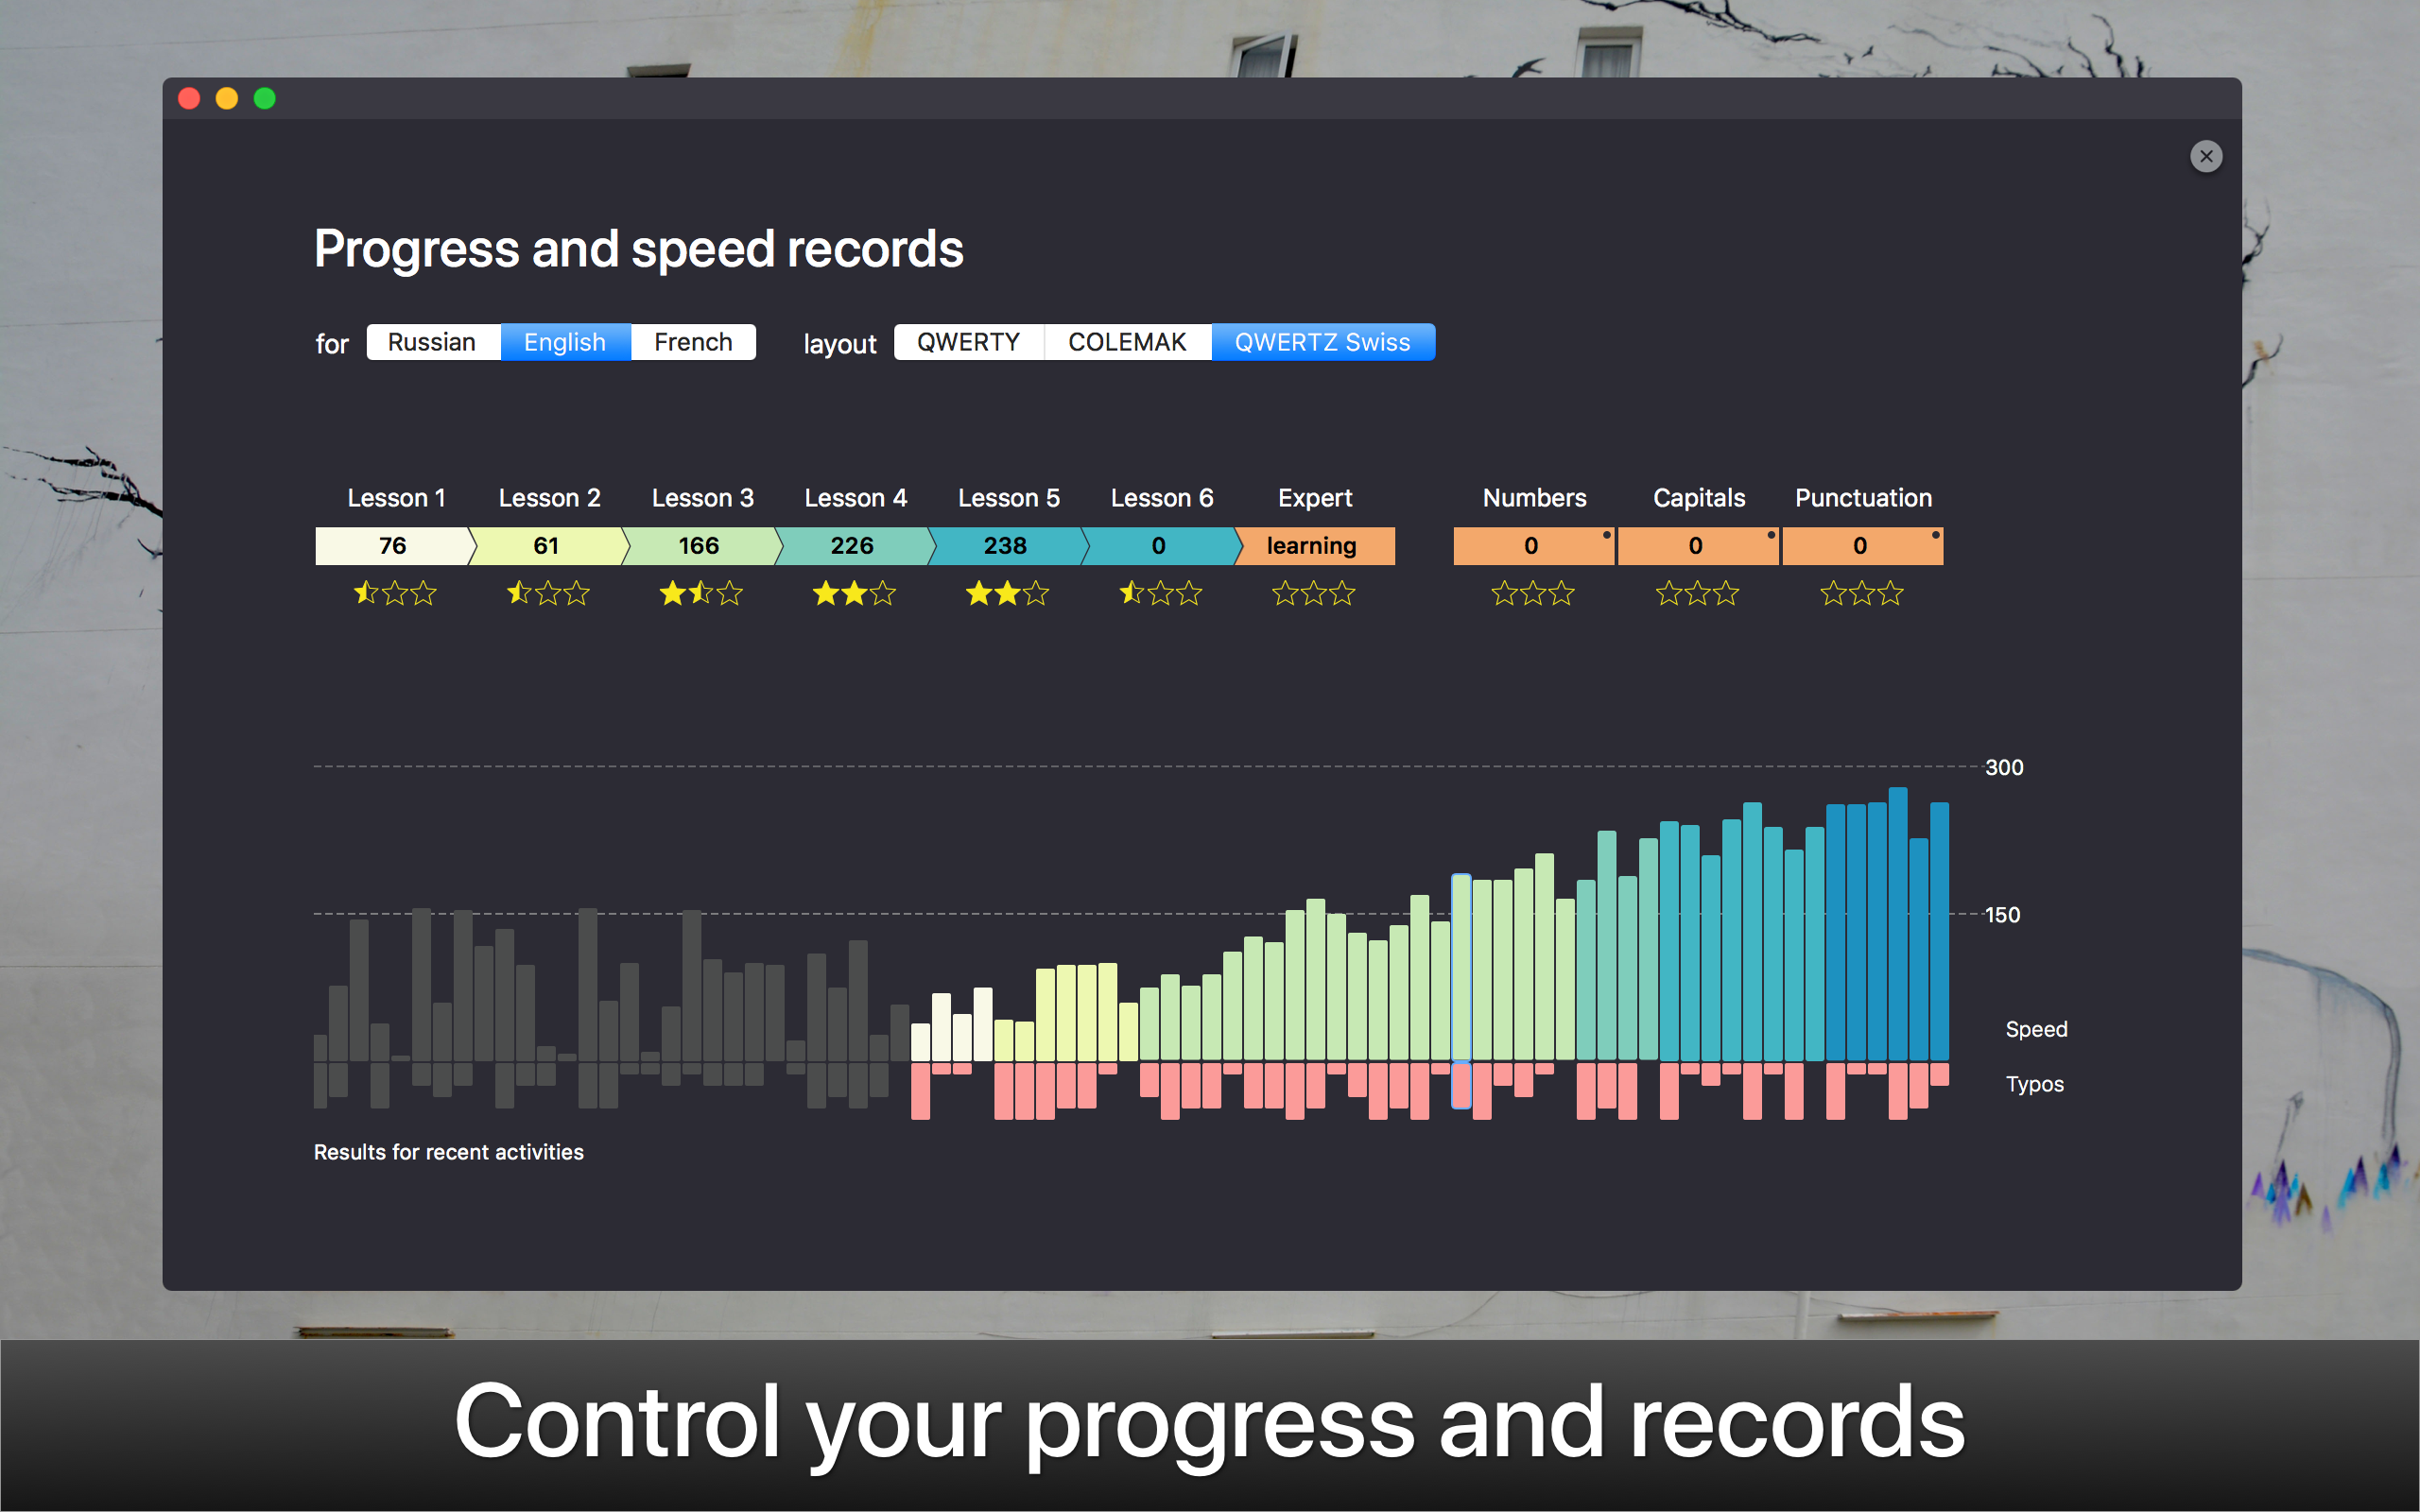 Control your progress and records.